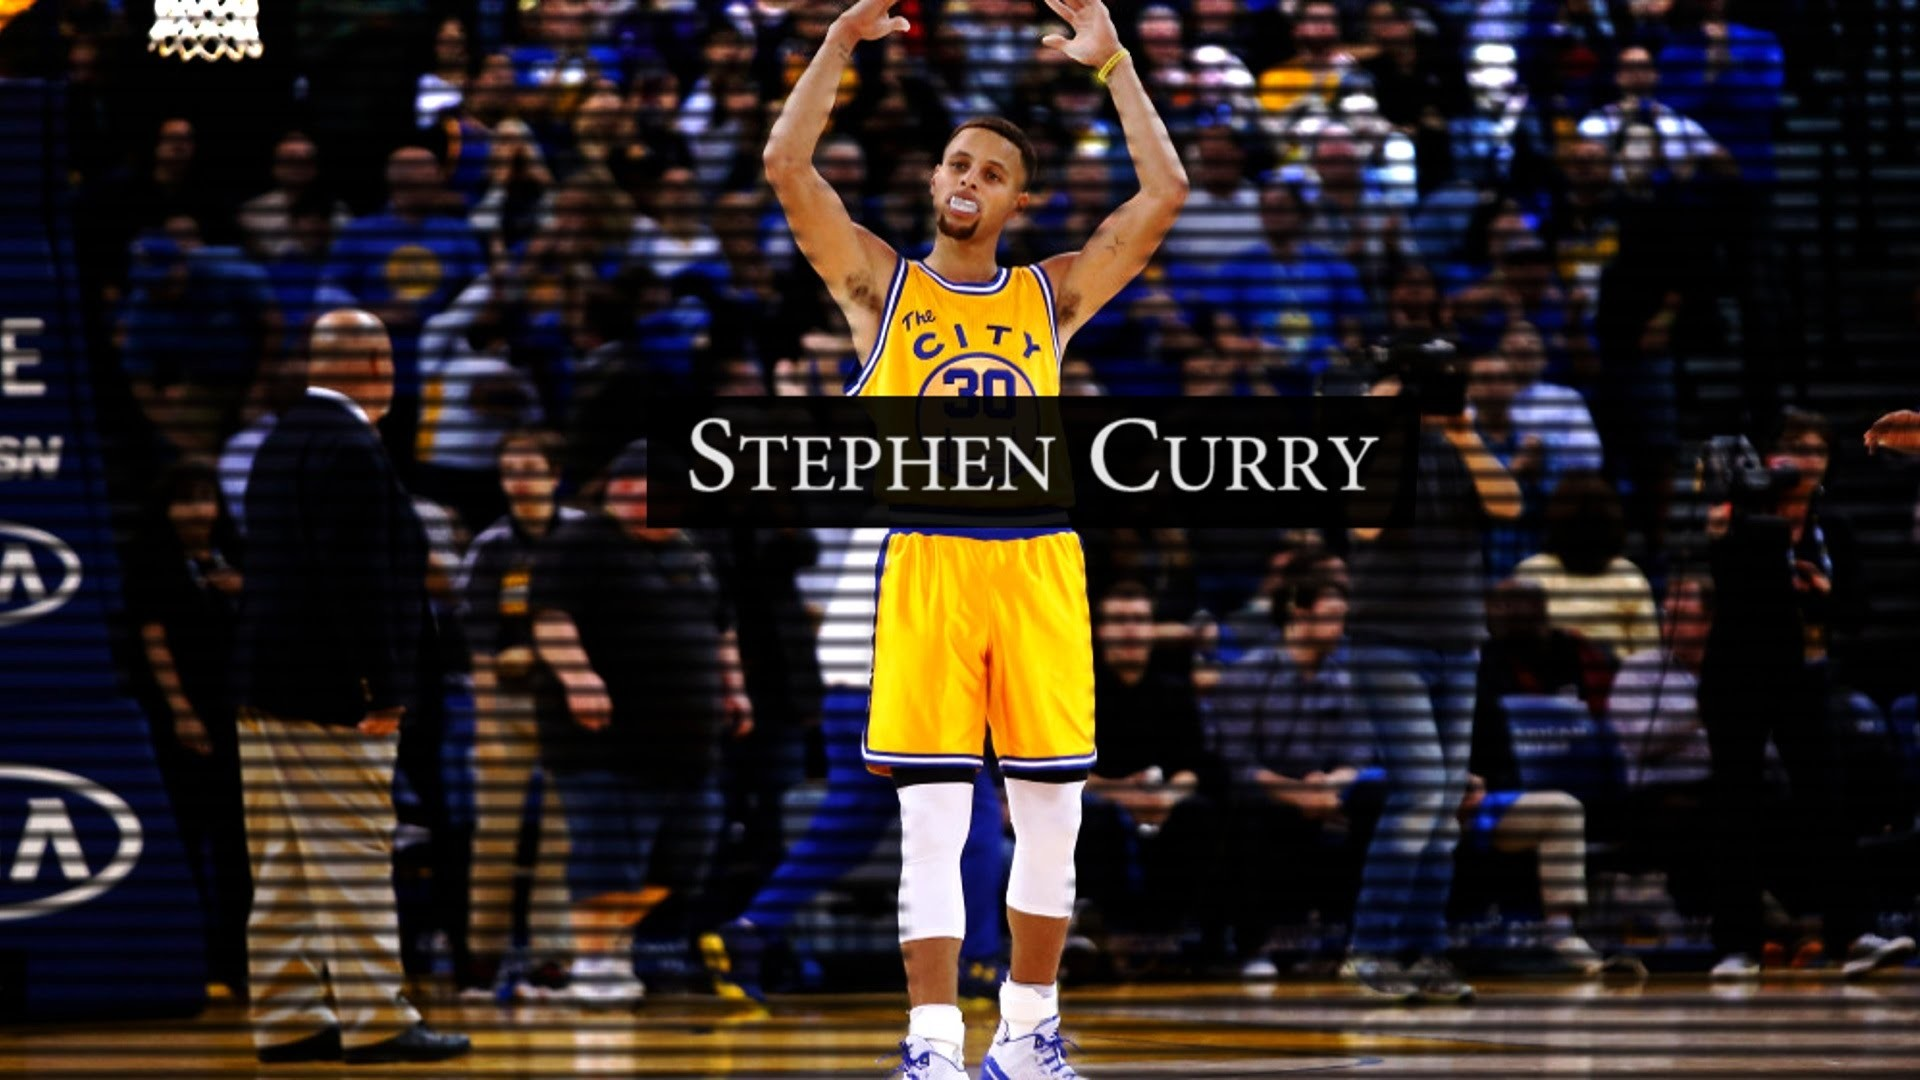 Stephen Curry Wallpaper HD (73+ images)